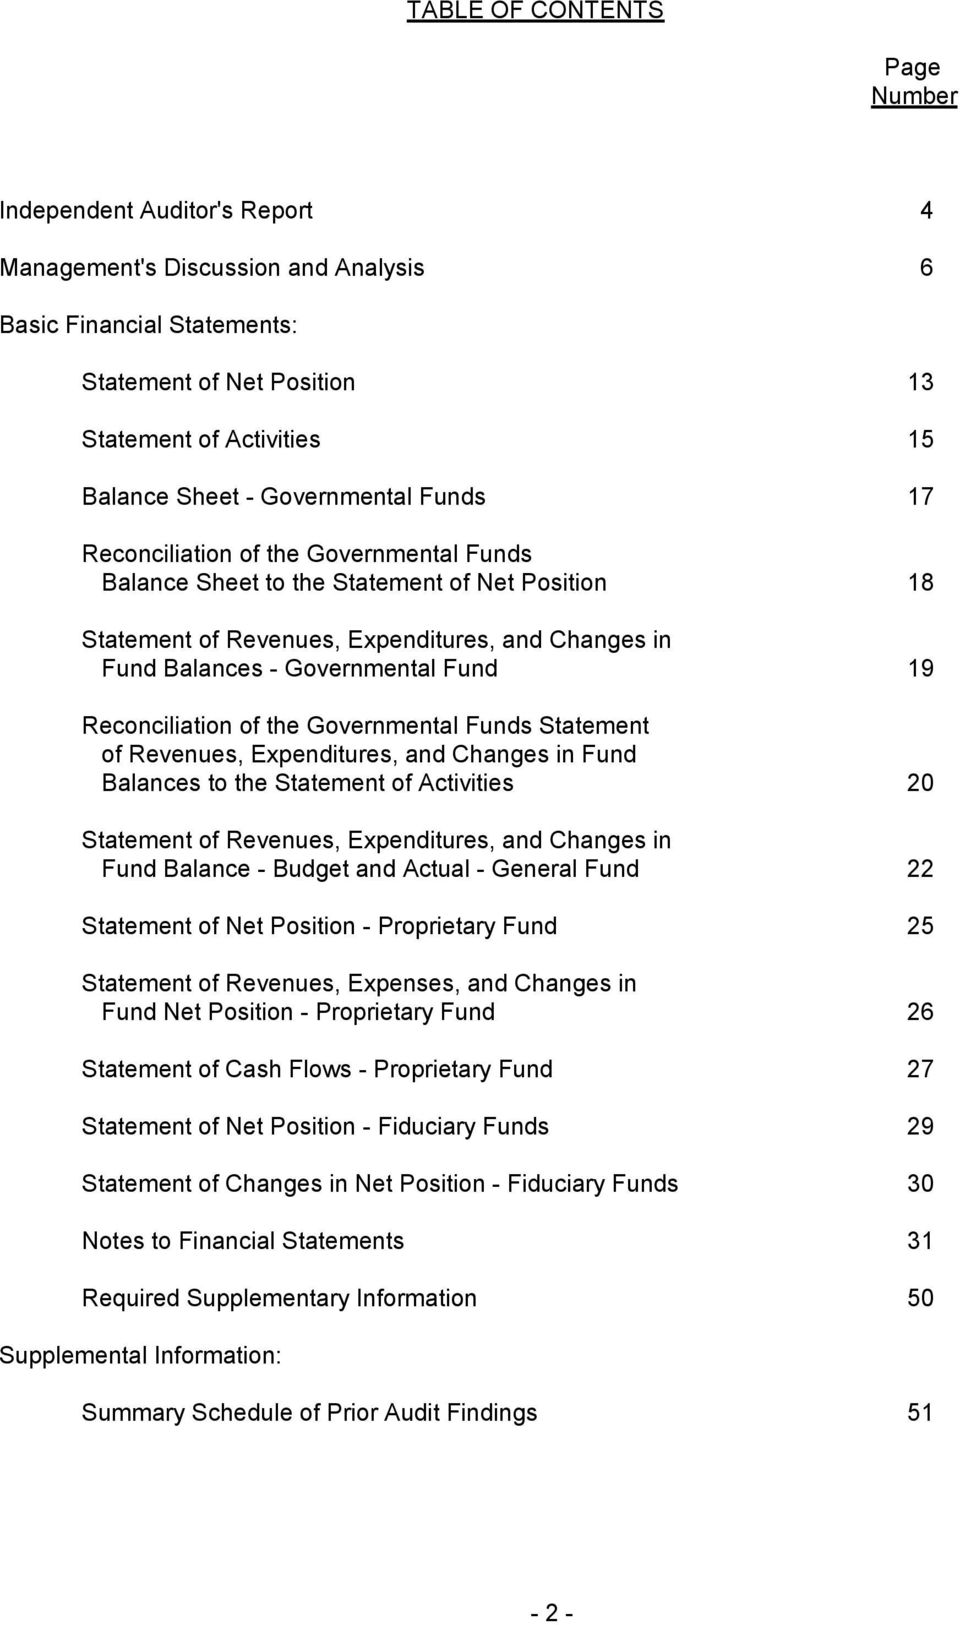 19 Reconciliation of the Governmental Funds Statement of Revenues, Expenditures, and Changes in Fund Balances to the Statement of Activities 20 Statement of Revenues, Expenditures, and Changes in